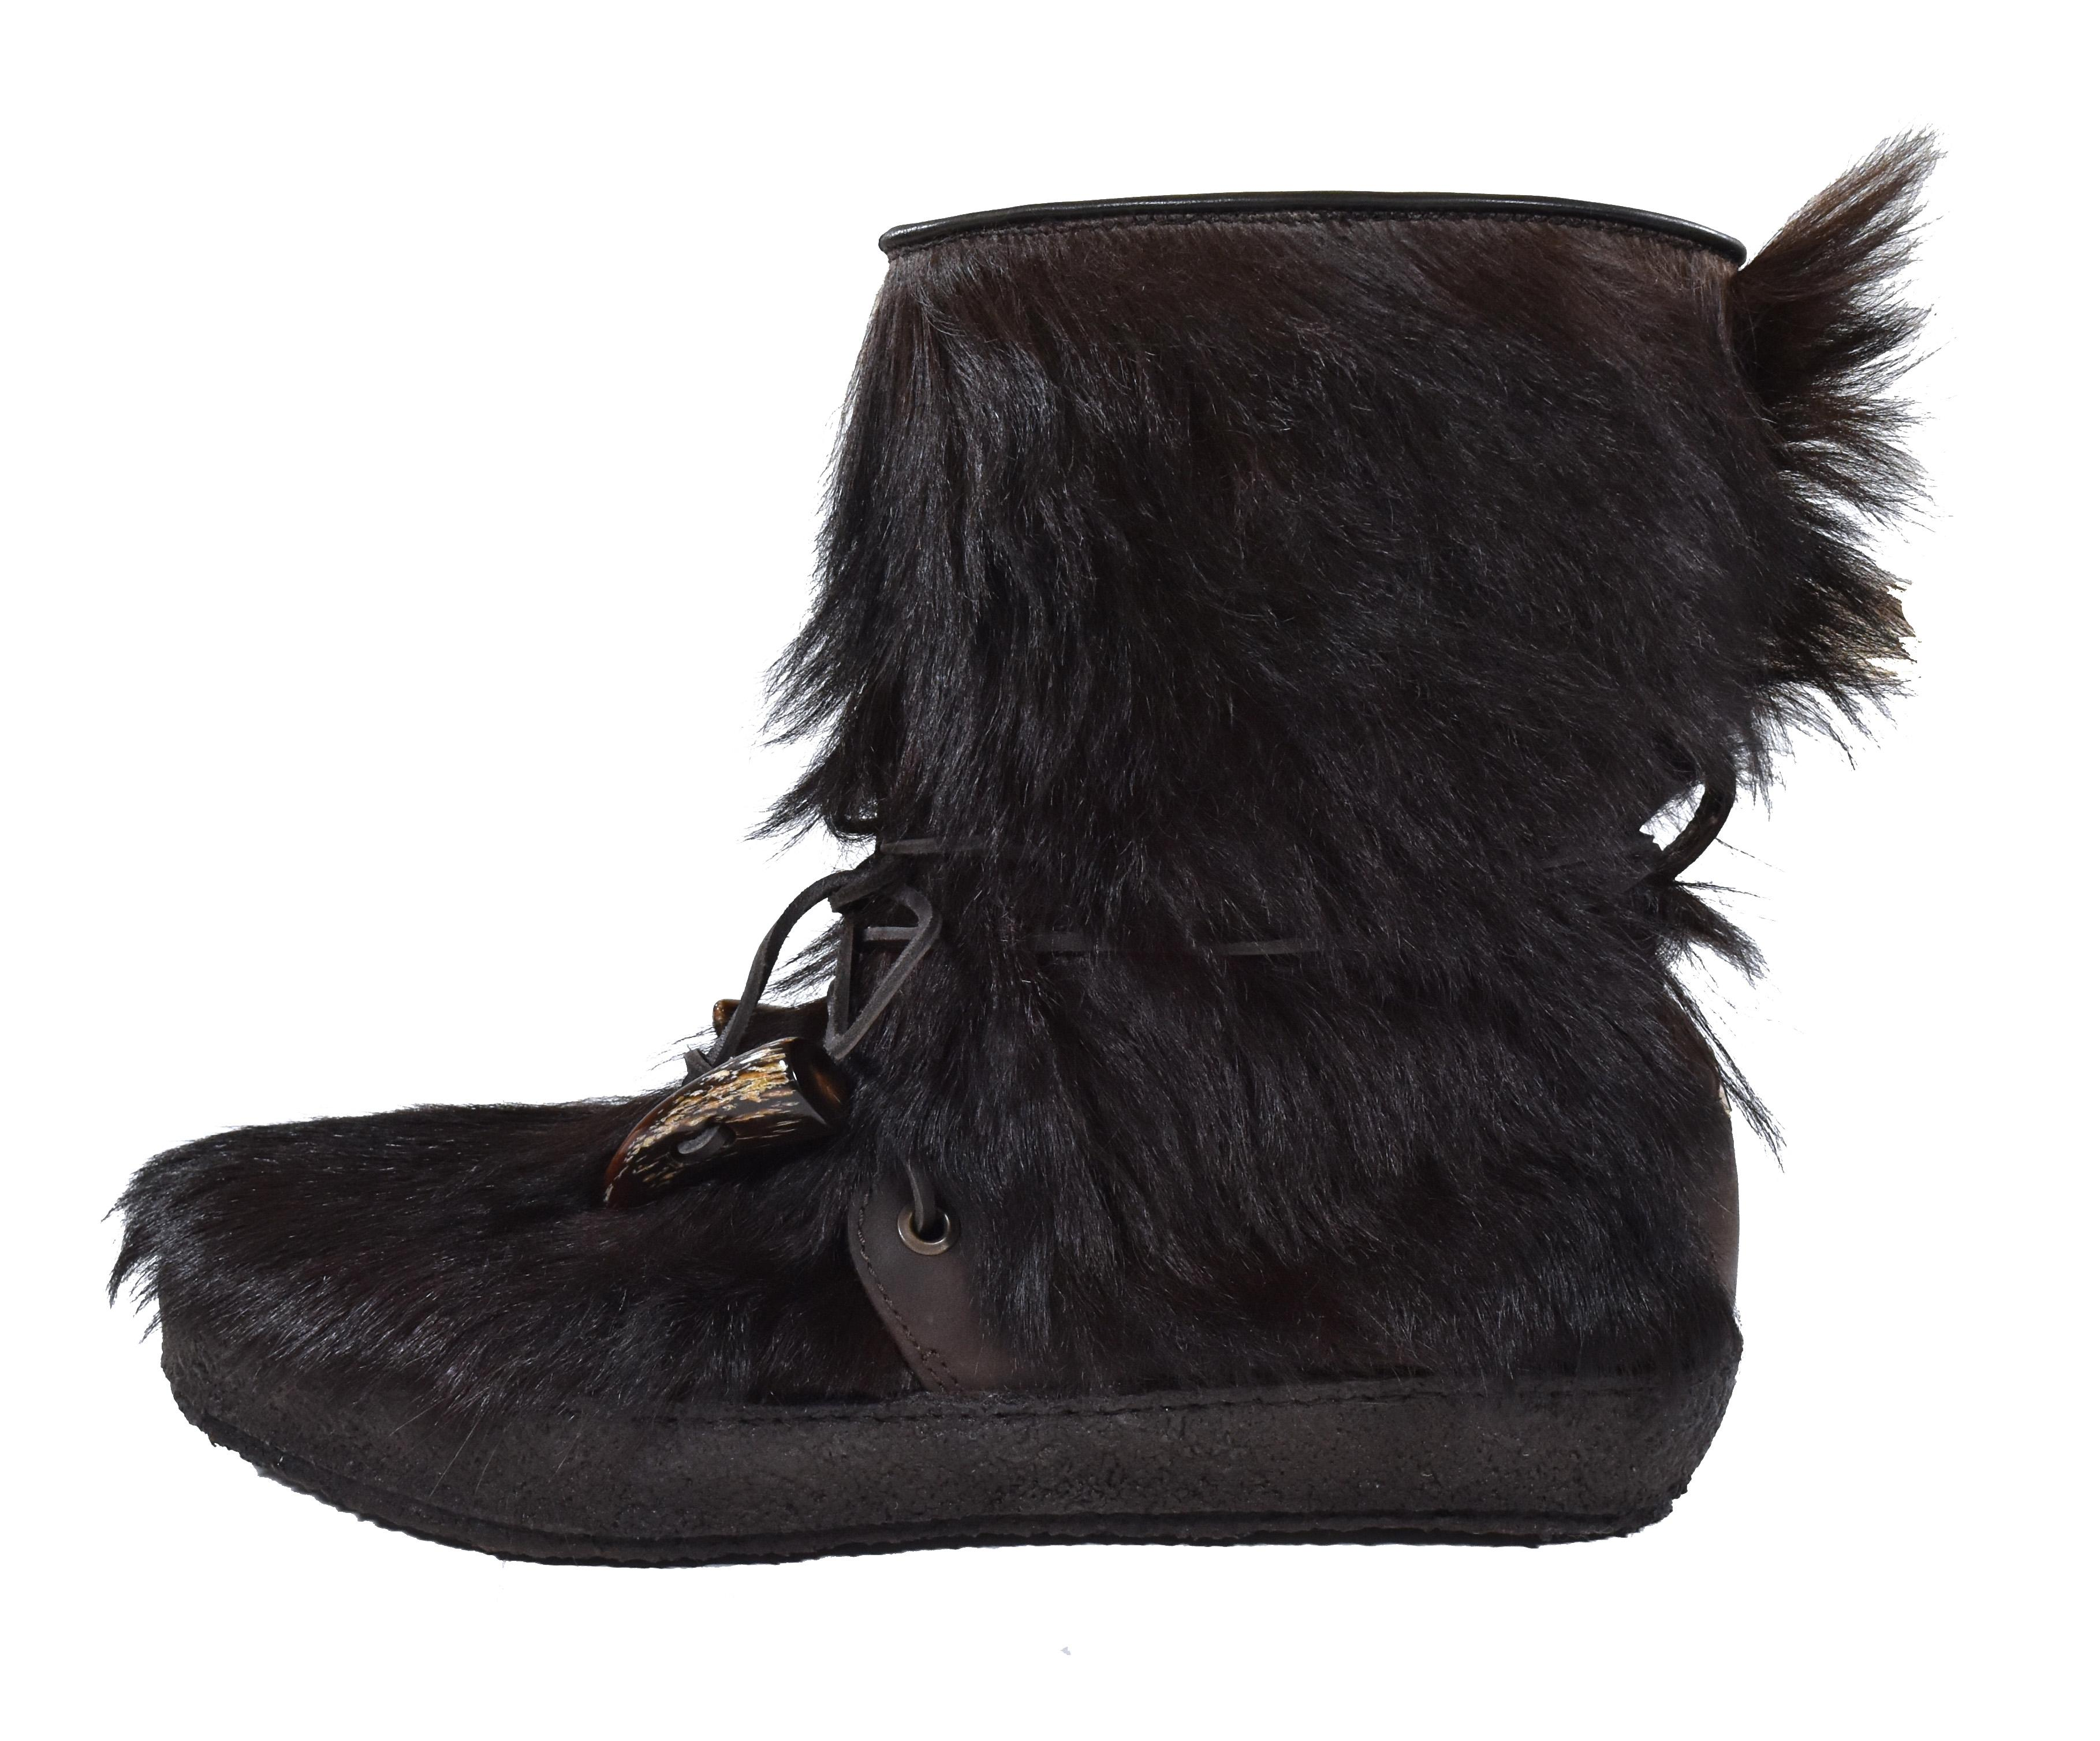 Moncler Brown Men's Fur Leather Clusone Ankle 9/42 New Boots/Booties Size US 9 Regular (M, B)